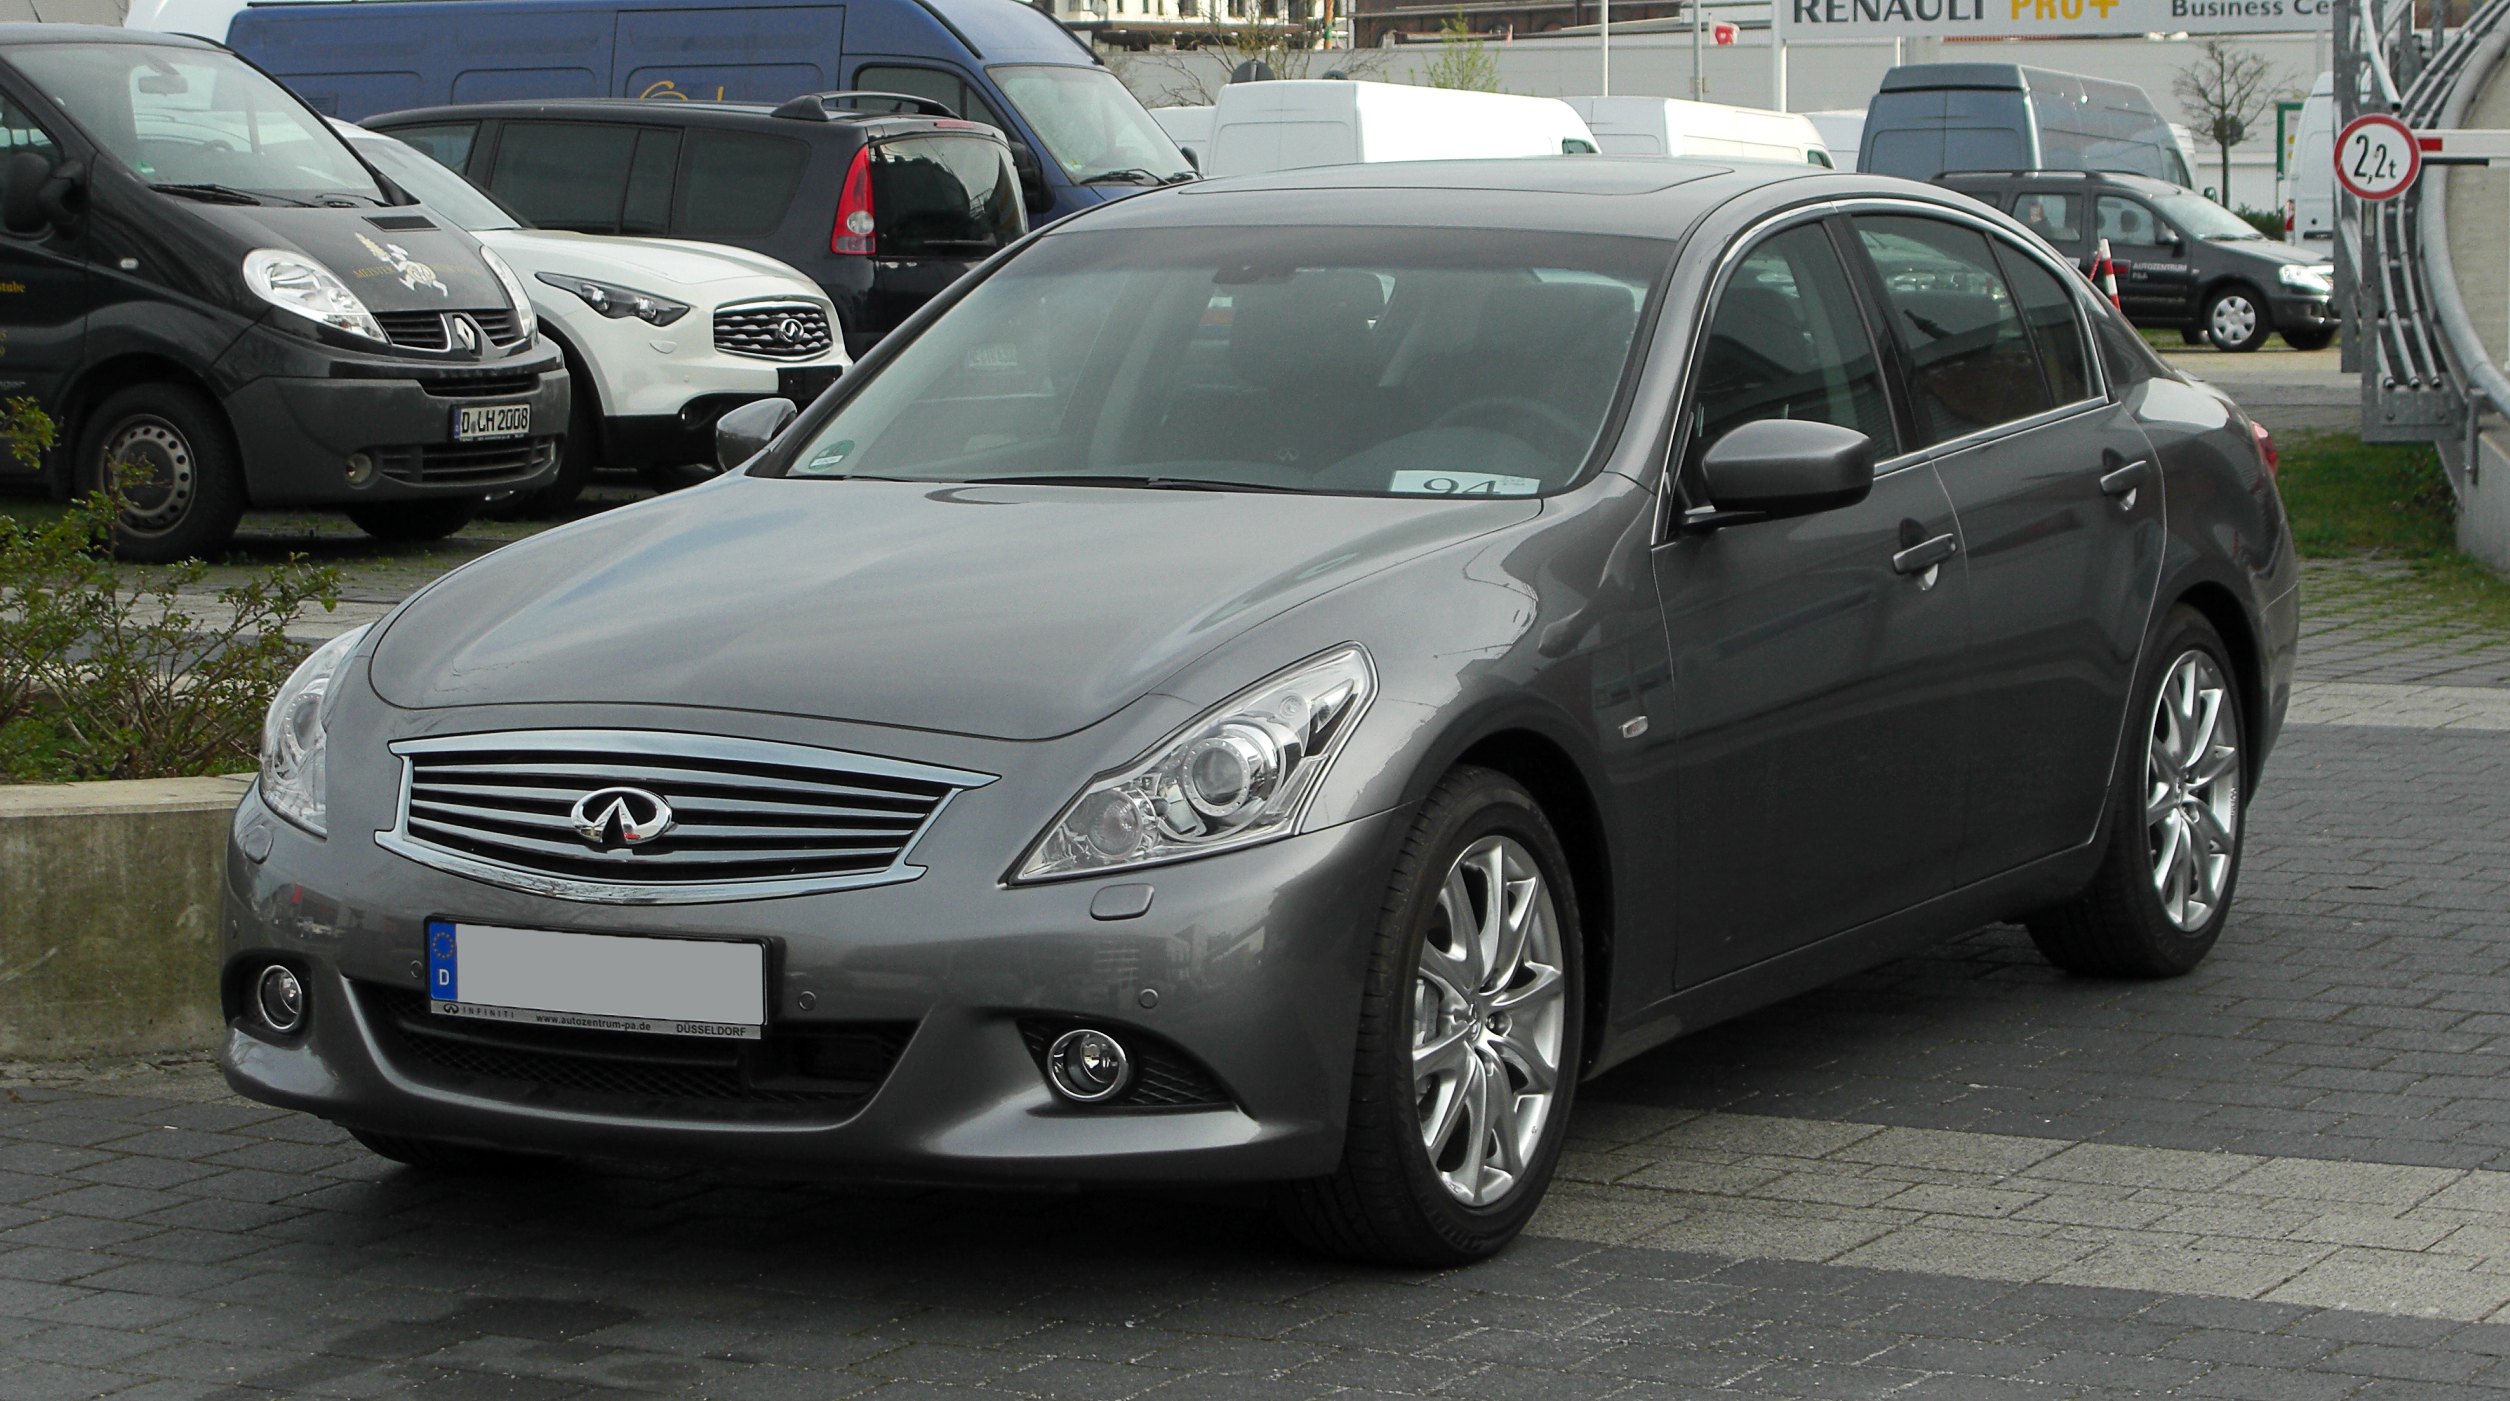 Fileinfiniti g37 s v36 facelift frontansicht 2 april 2011 fileinfiniti g37 s v36 facelift frontansicht 2 april vanachro Choice Image